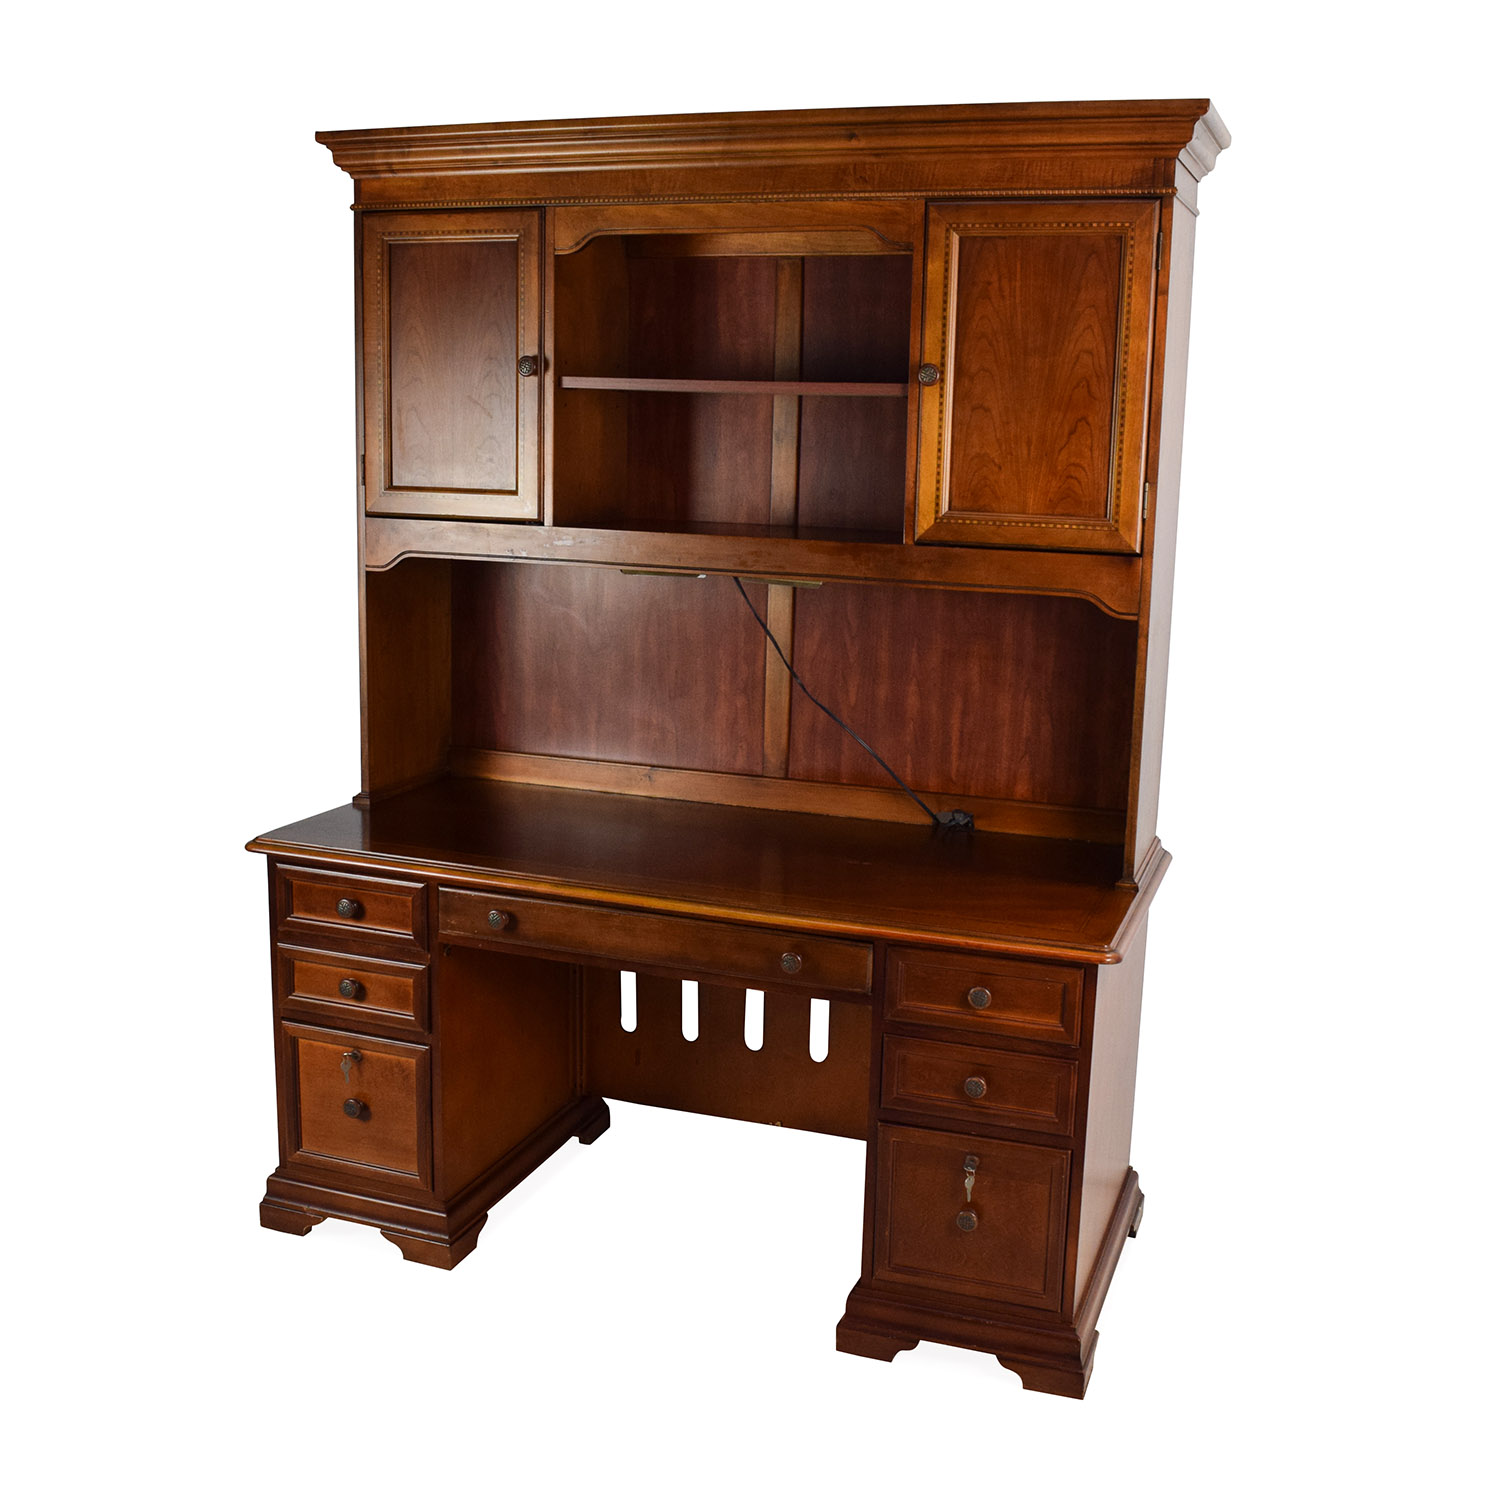 79 off hammary furniture hammary furniture wooden desk for Wooden home furnichers